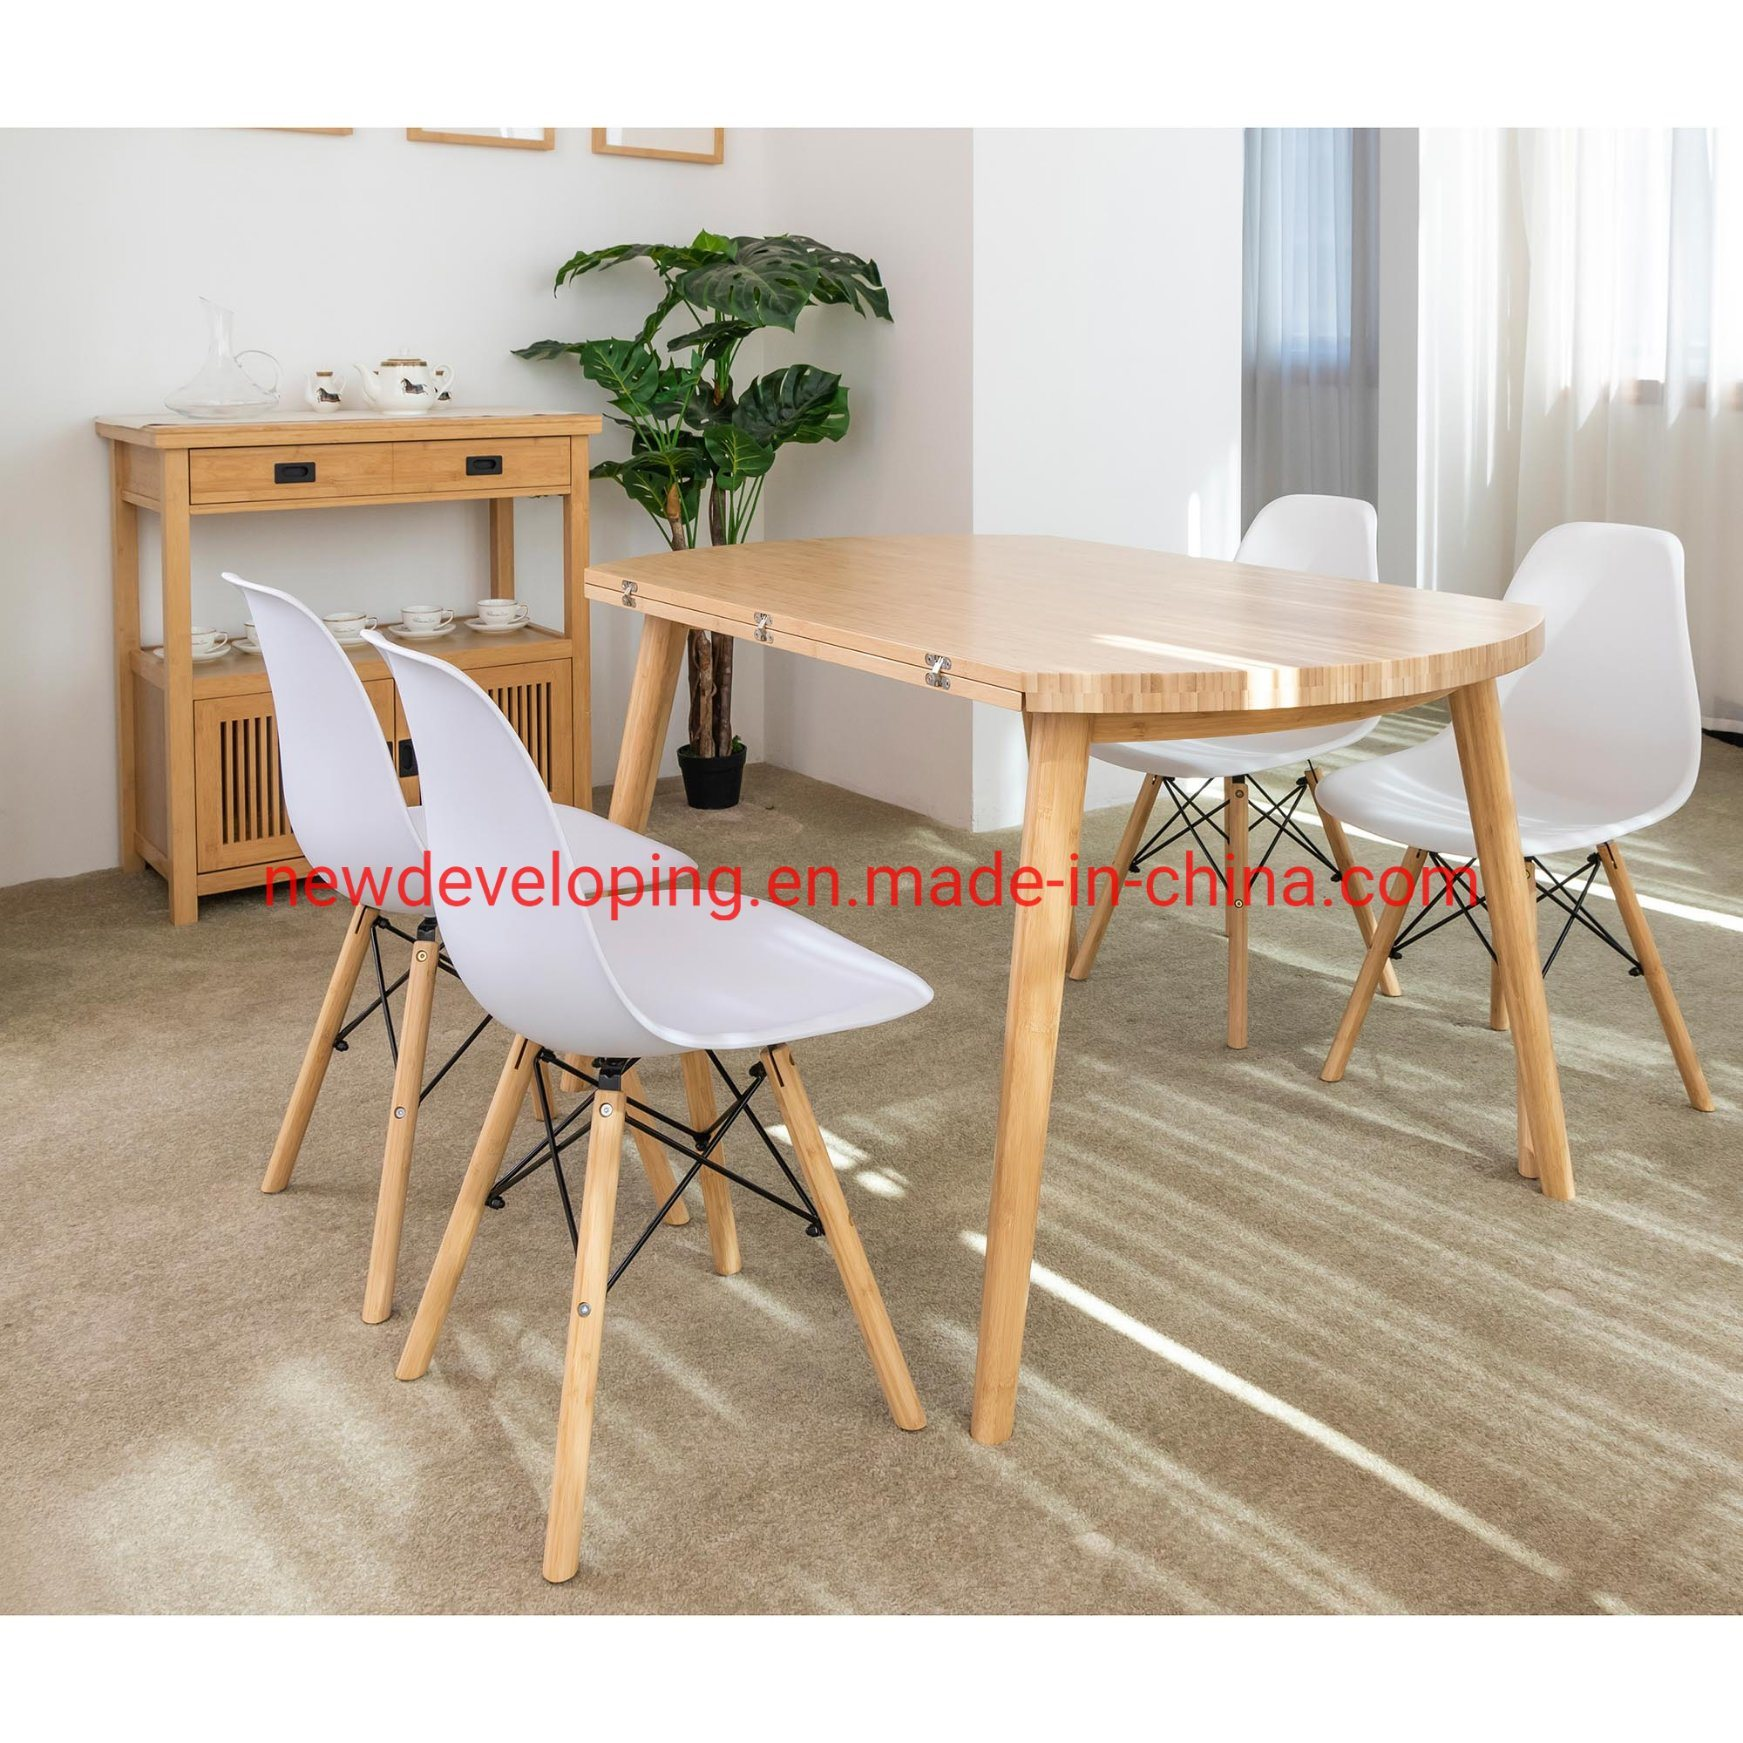 China Dining Furniture Bamboo Counter Top Dining Table Set Price Photos Pictures Made In China Com